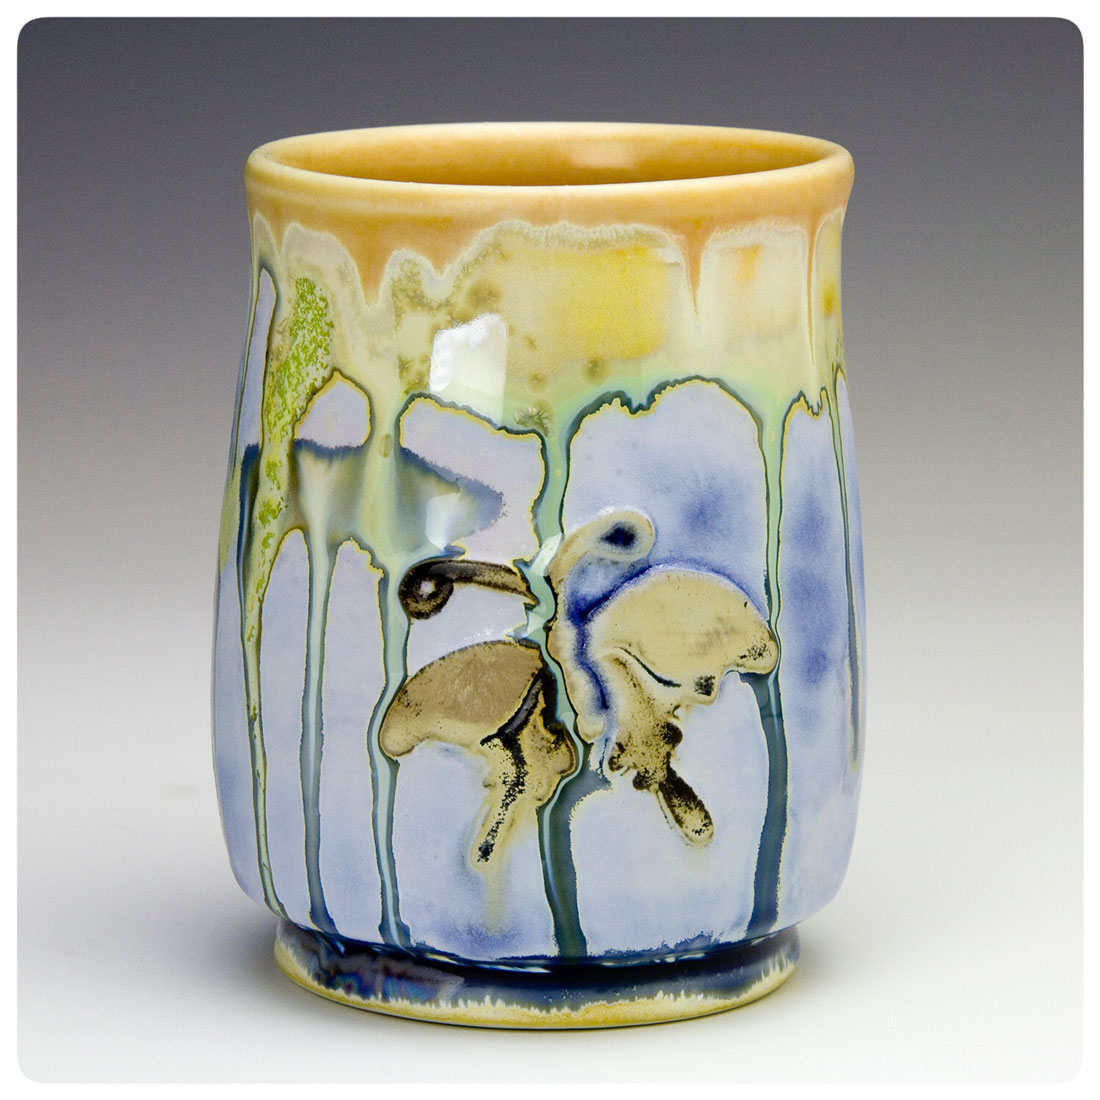 Copy of 10.Butterfly cup made by Samantha Henneke| Bulldog Pottery | Seagrove | North Carolina